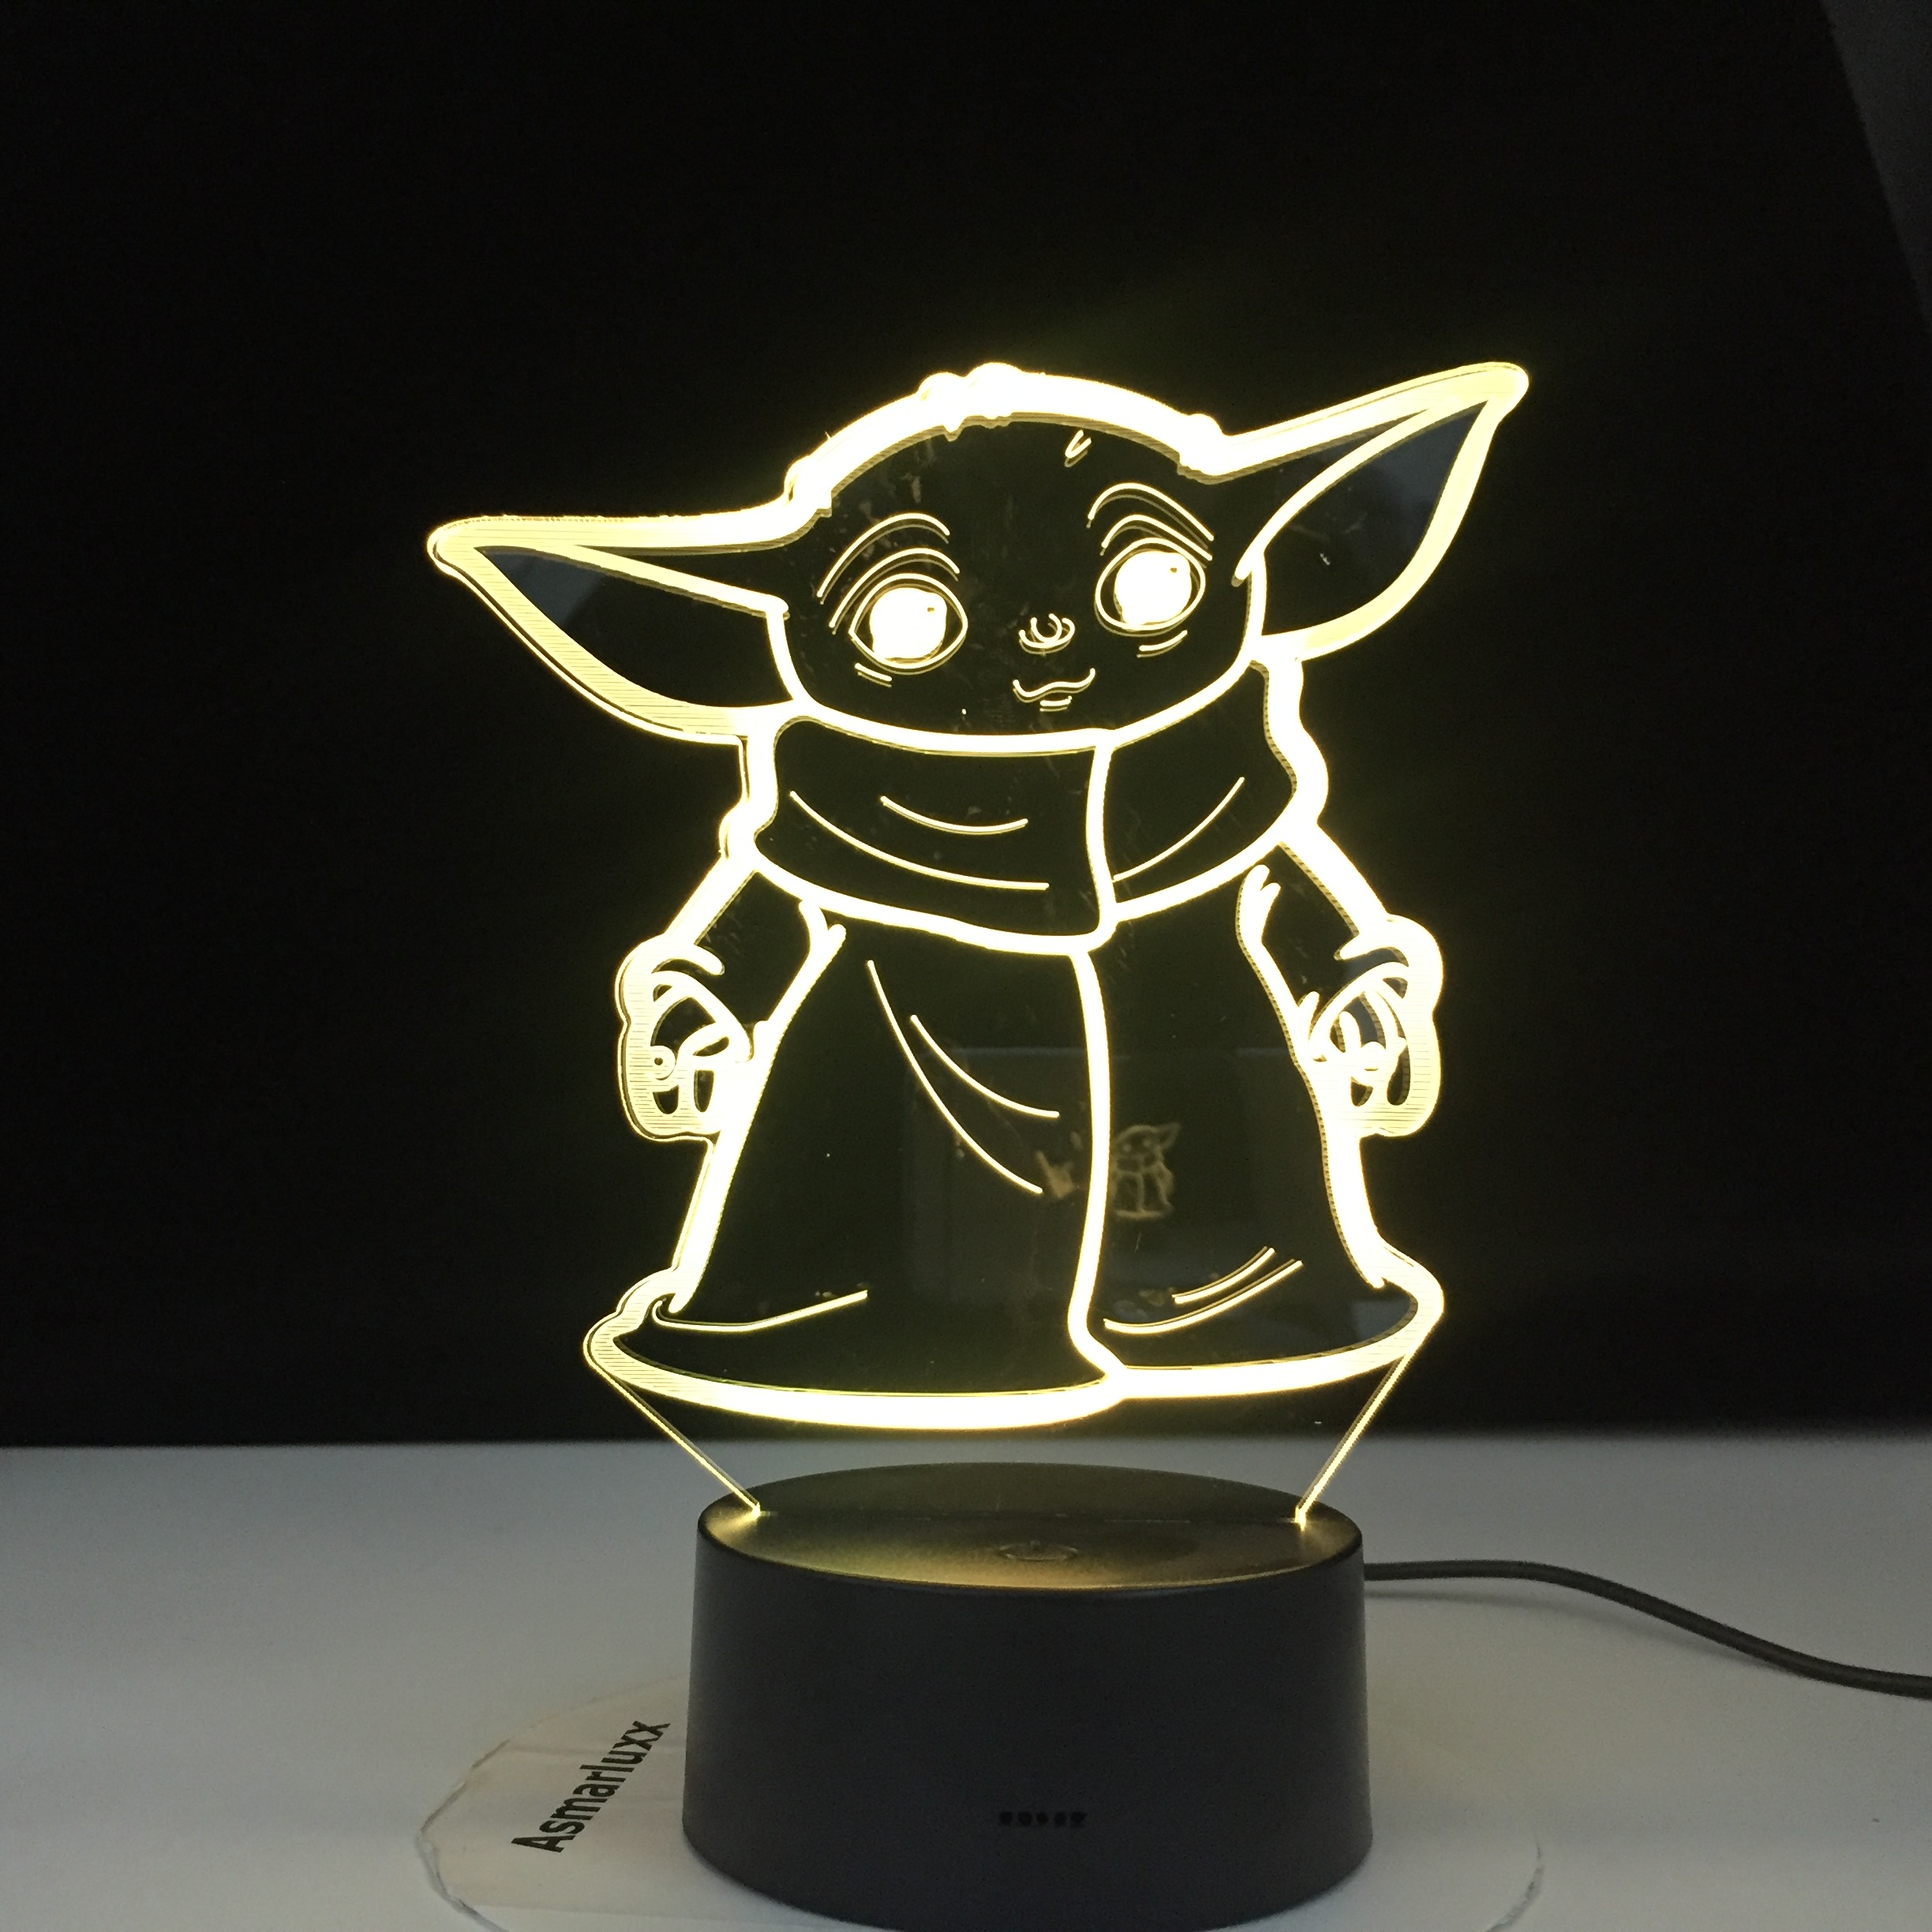 Star Wars Mini Yoda 3d Led Night Light Baby Cartoon Meme Figure Nightlight for Kids Child Bedroom Decor Table Lamp Night Light image